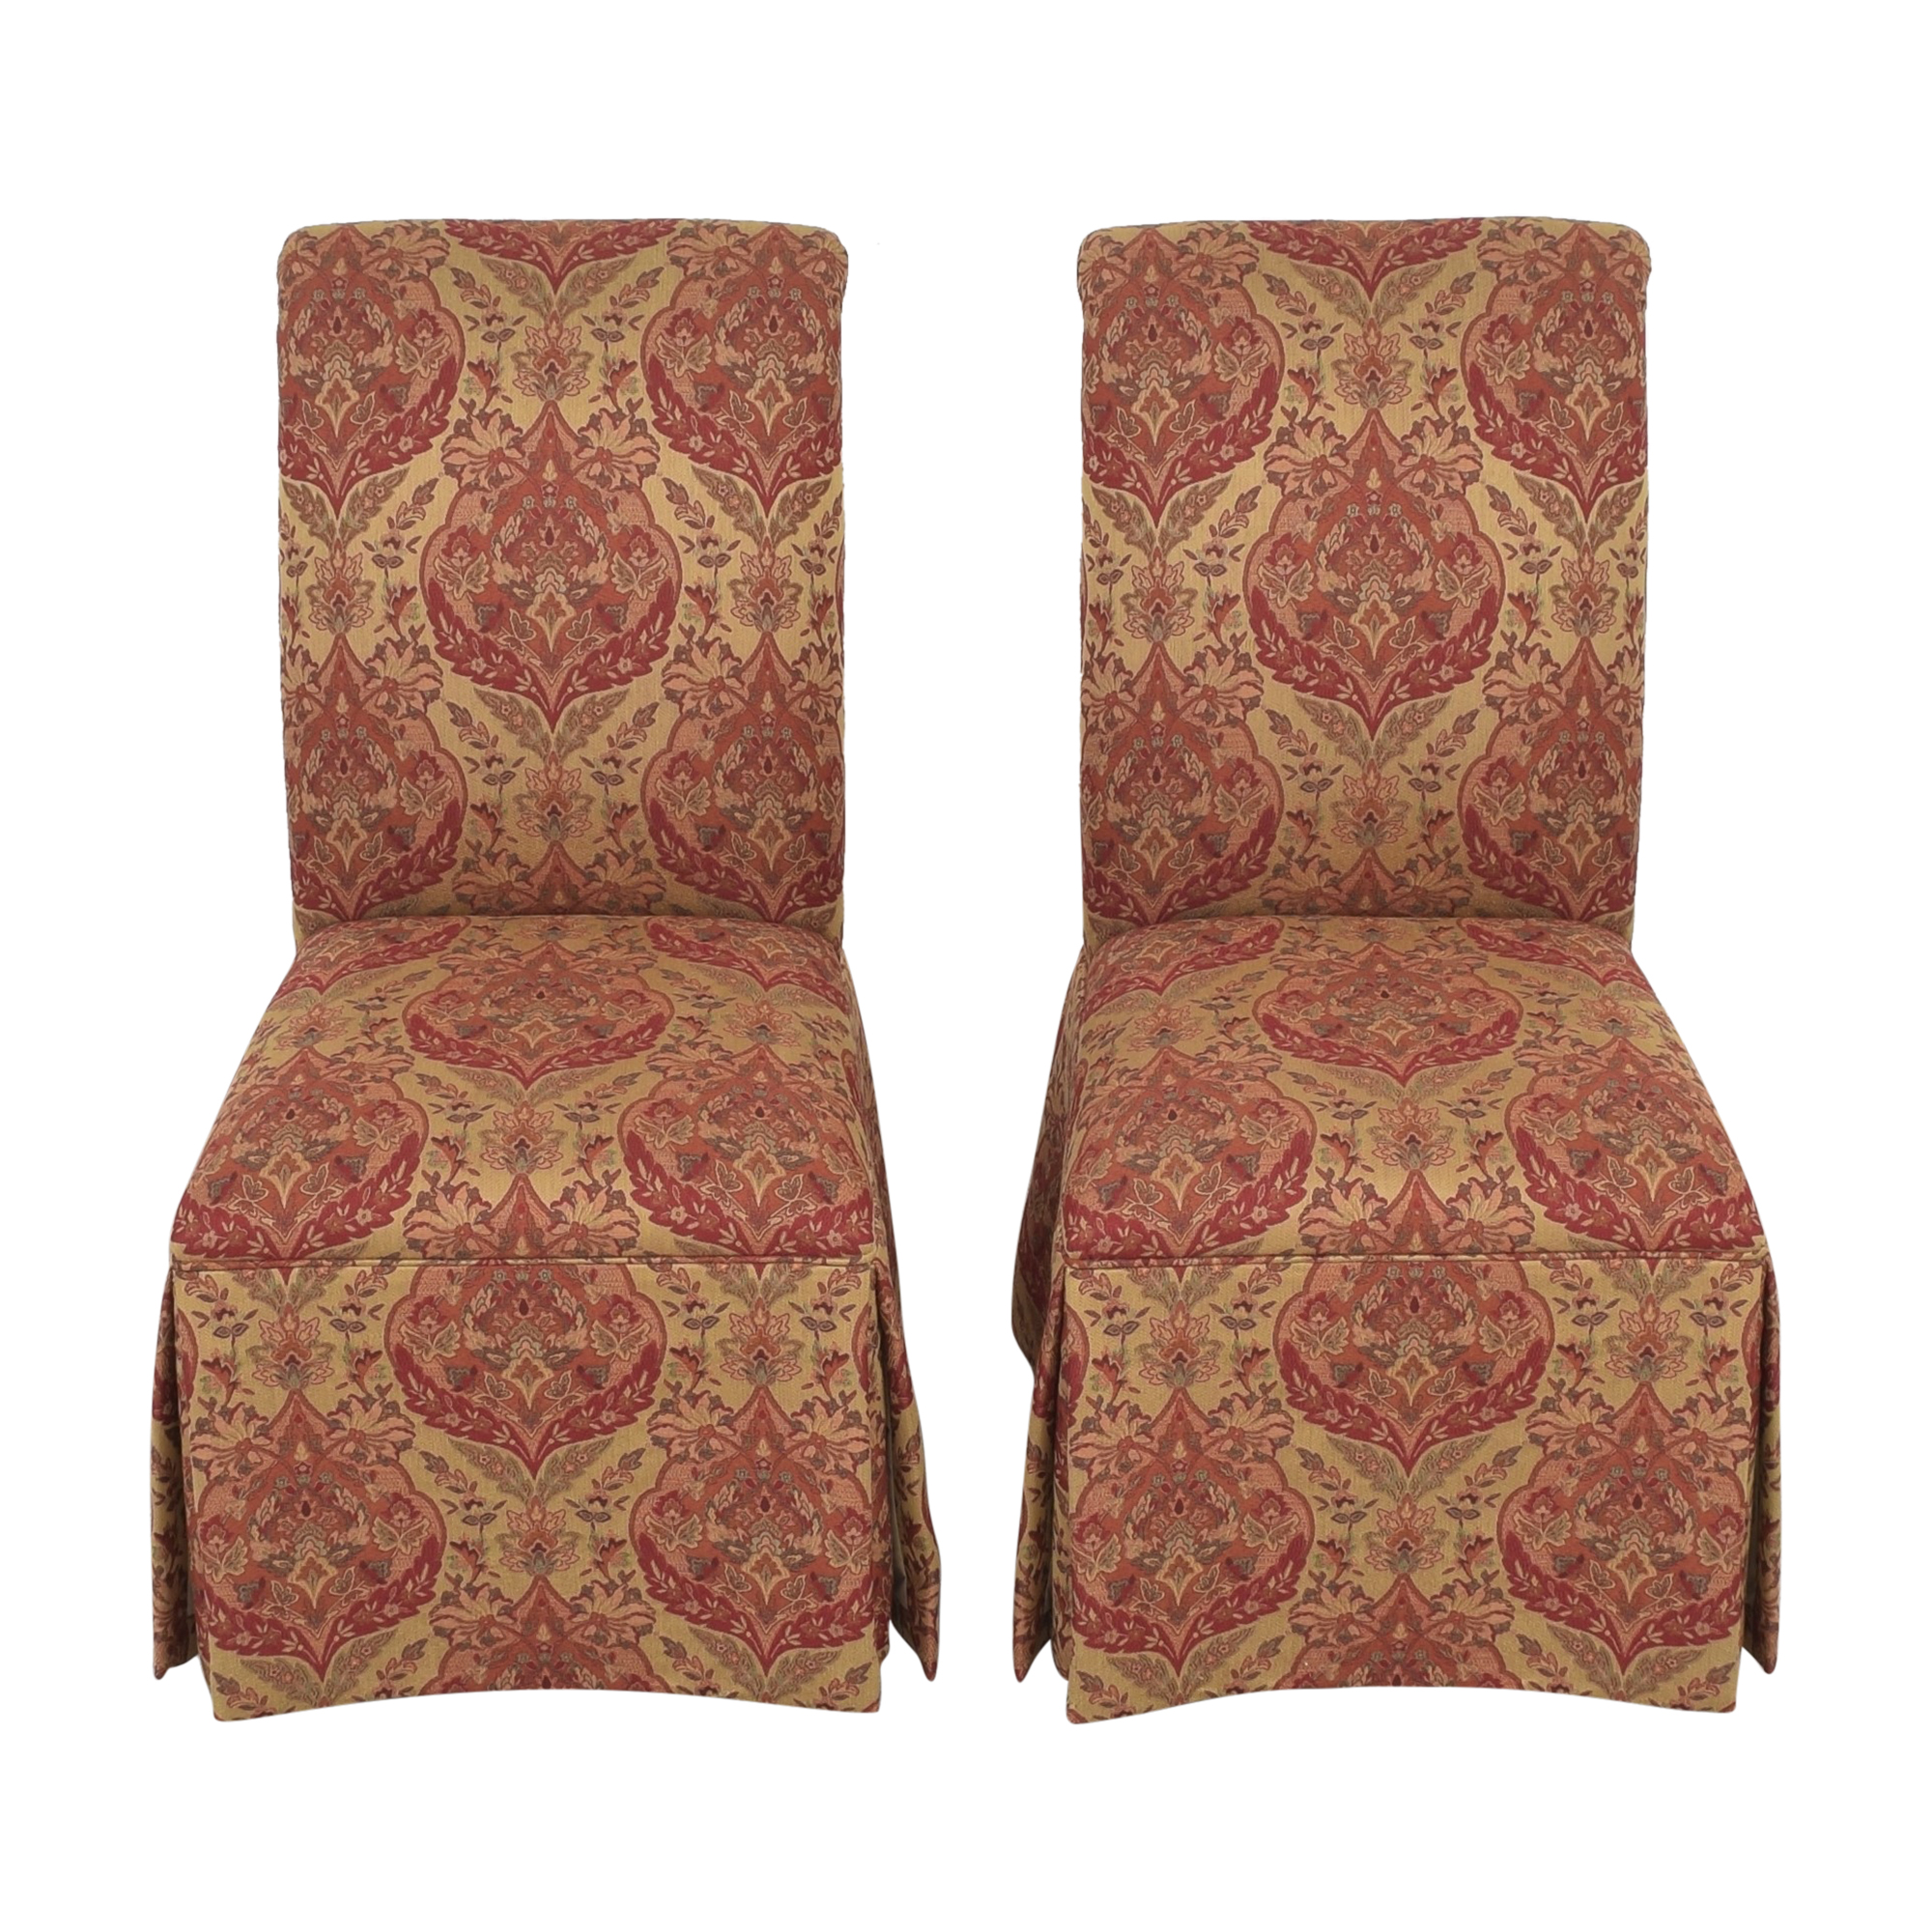 Ethan Allen Ethan Allen Olivia Skirted Side Chairs Chairs